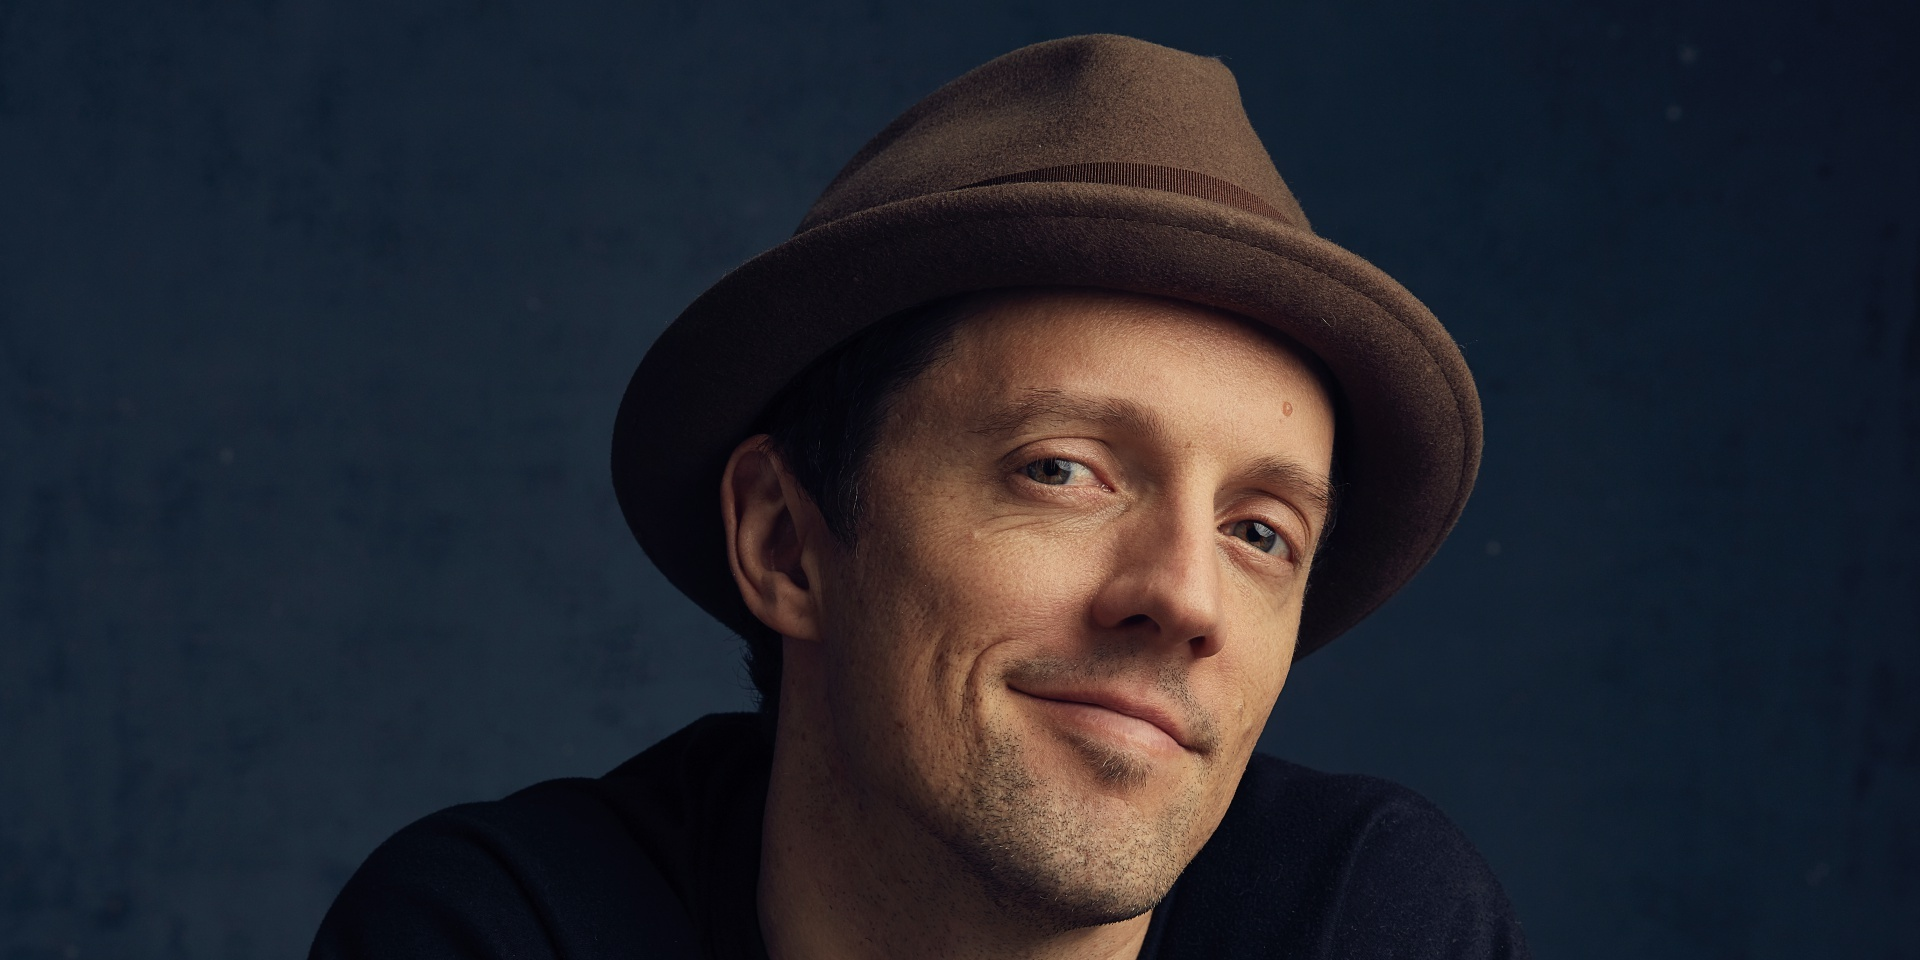 """I wanted to do goodness with my words and my actions"": An interview with Jason Mraz"